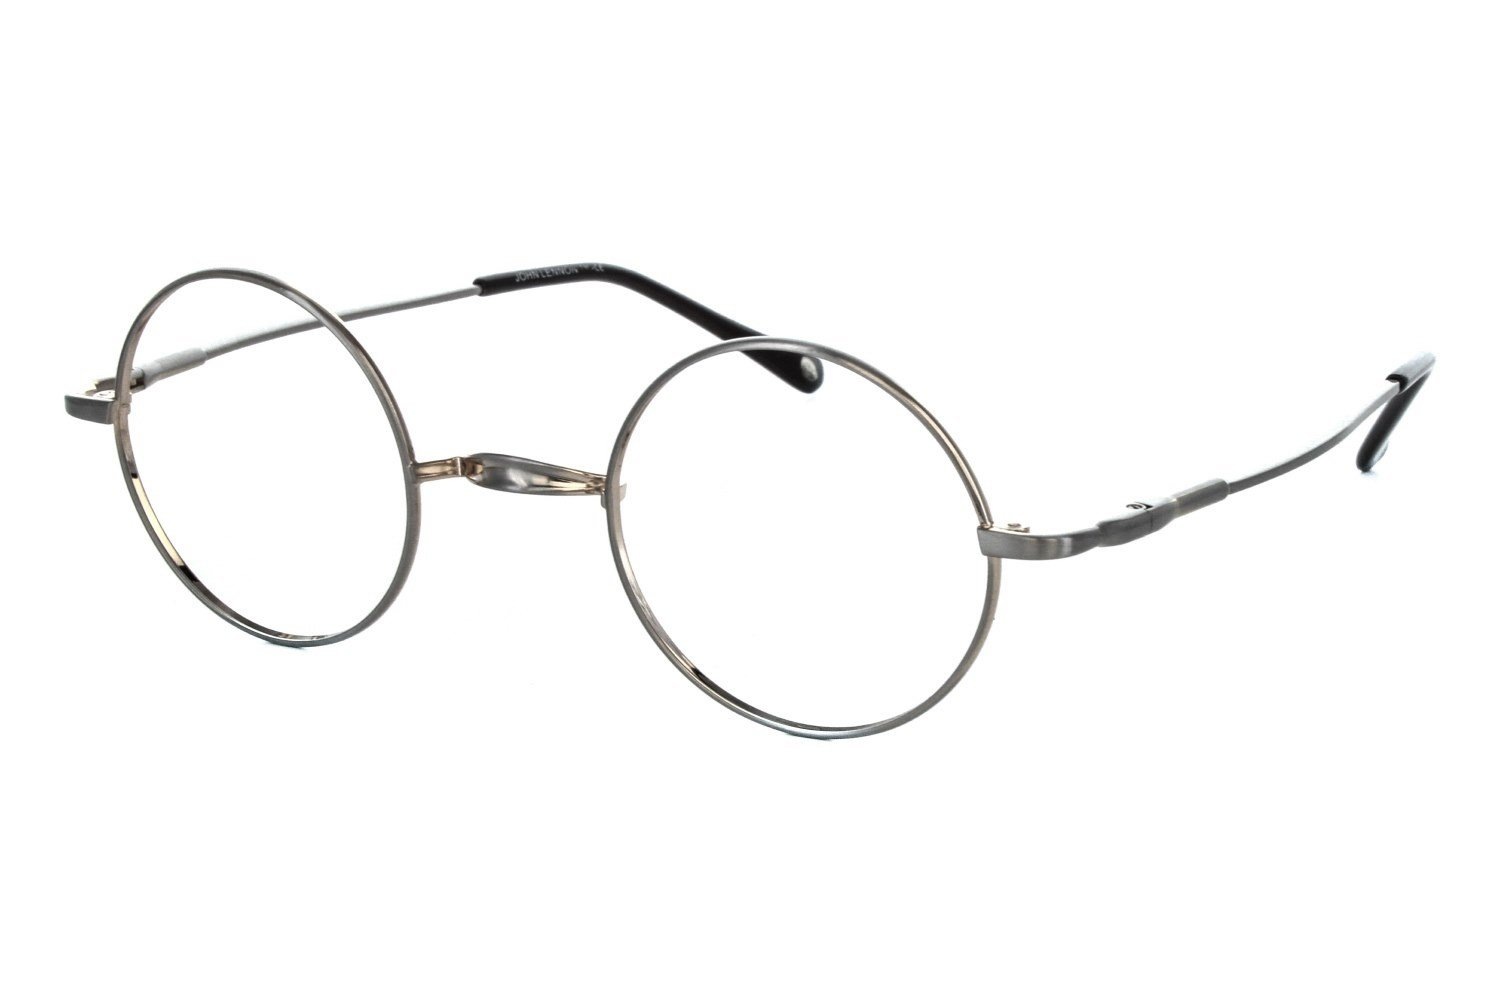 Glasses Frames John Lennon : John Lennon Wheels Prescription Eyeglasses ...